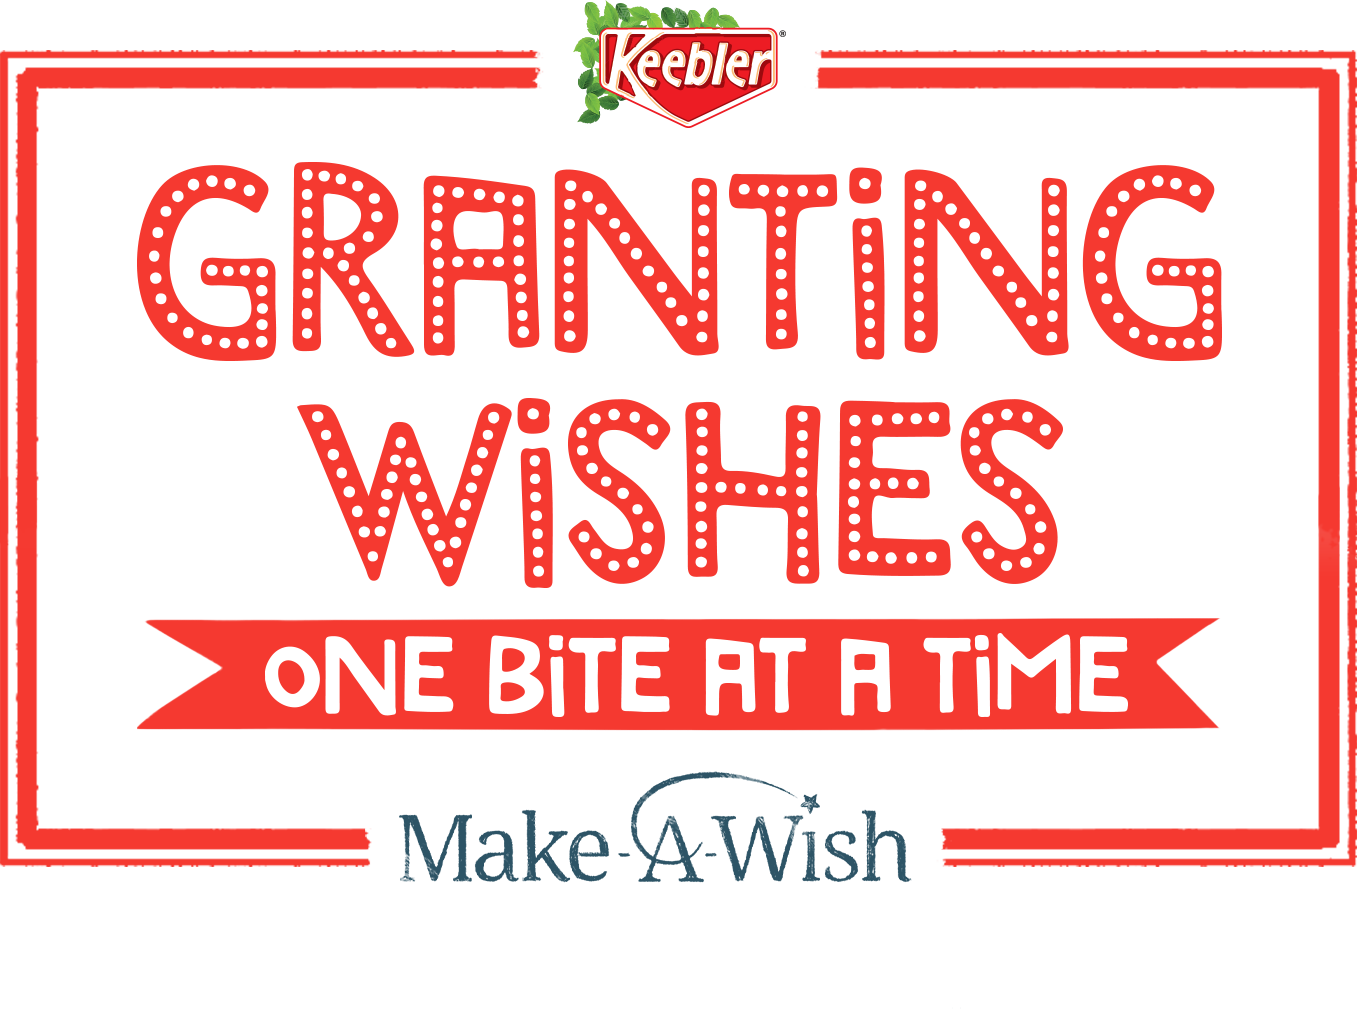 Keebler is Granting Wishes One Bite at a Time with Make-A-Wish